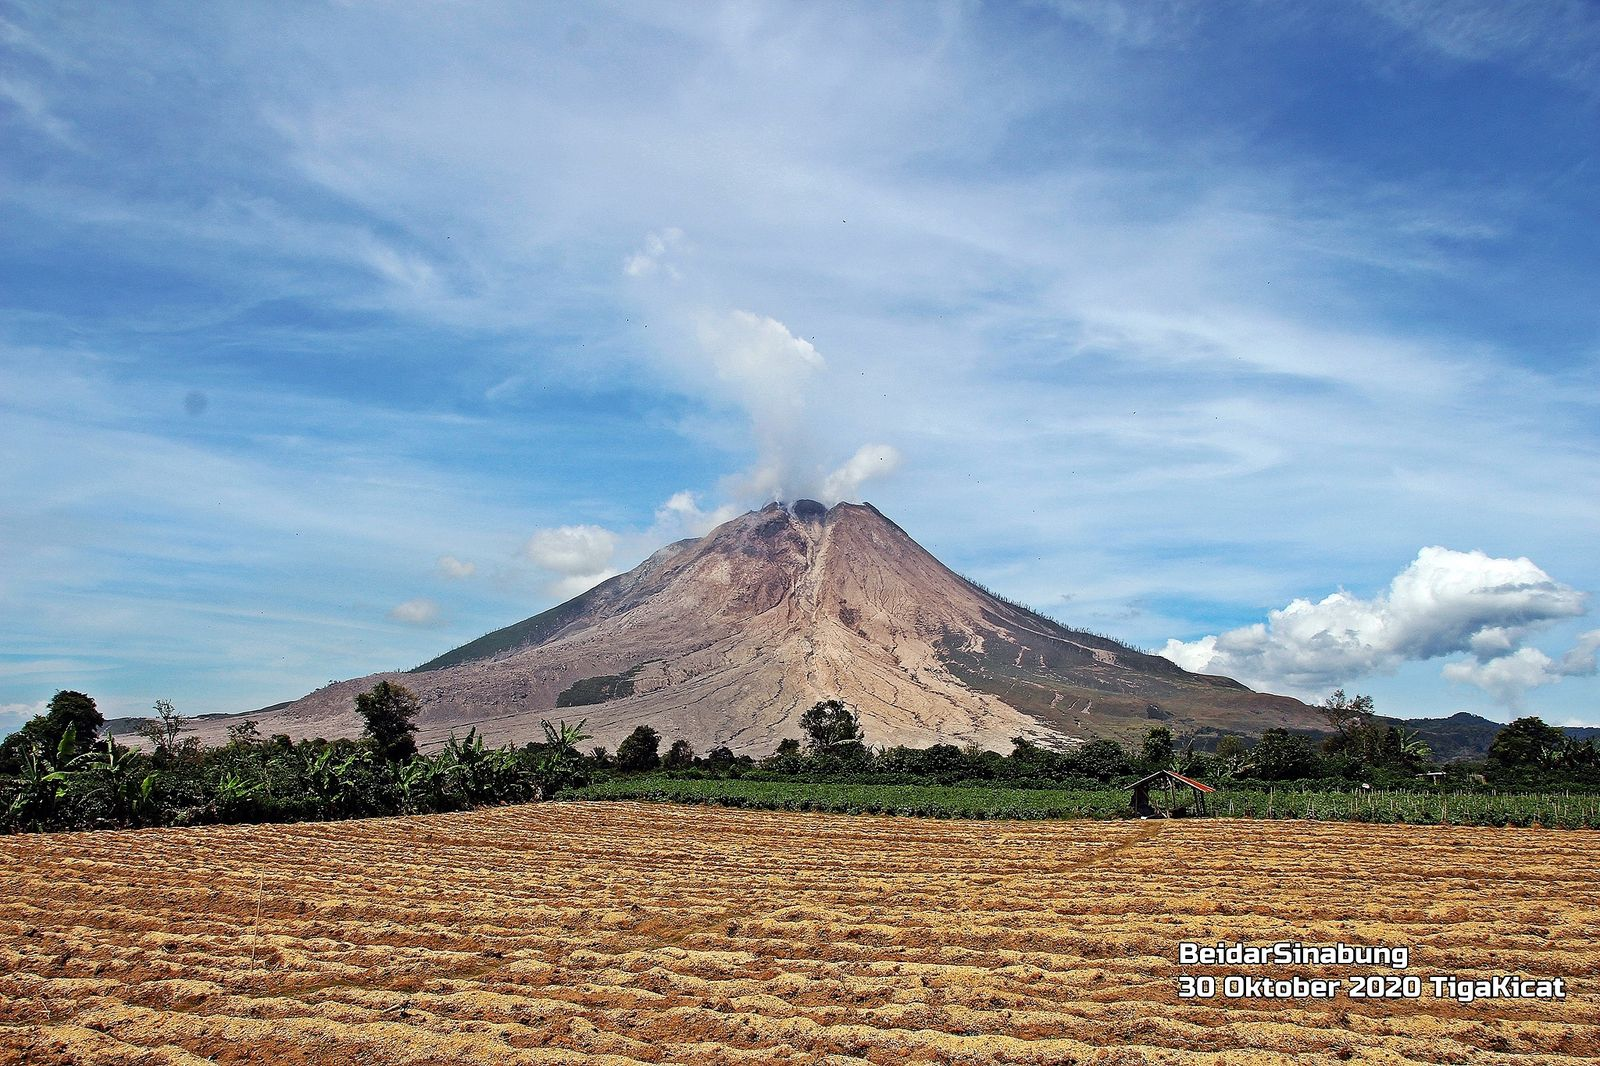 Sinabung - the volcano, clearly visible, emits a light white plume - photo 30.10.2020 Firdaus Surbakti / Beidar Sinabung